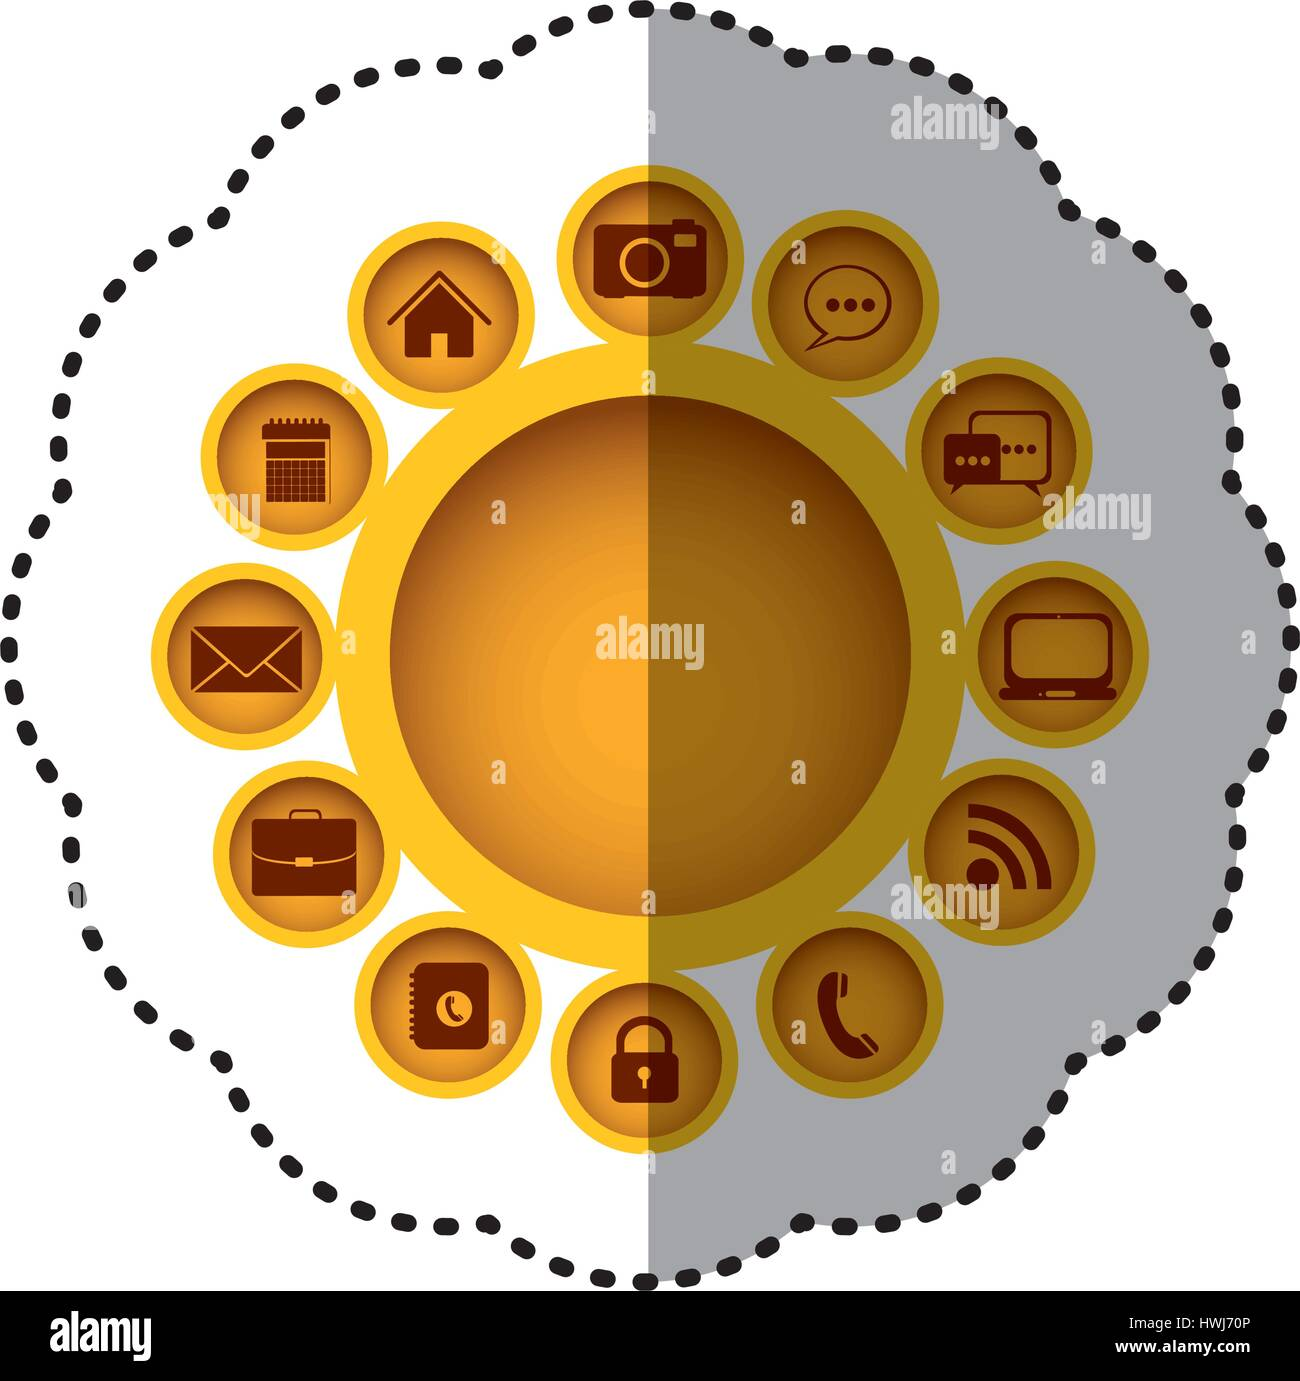 yellow technology apps connections icon - Stock Image